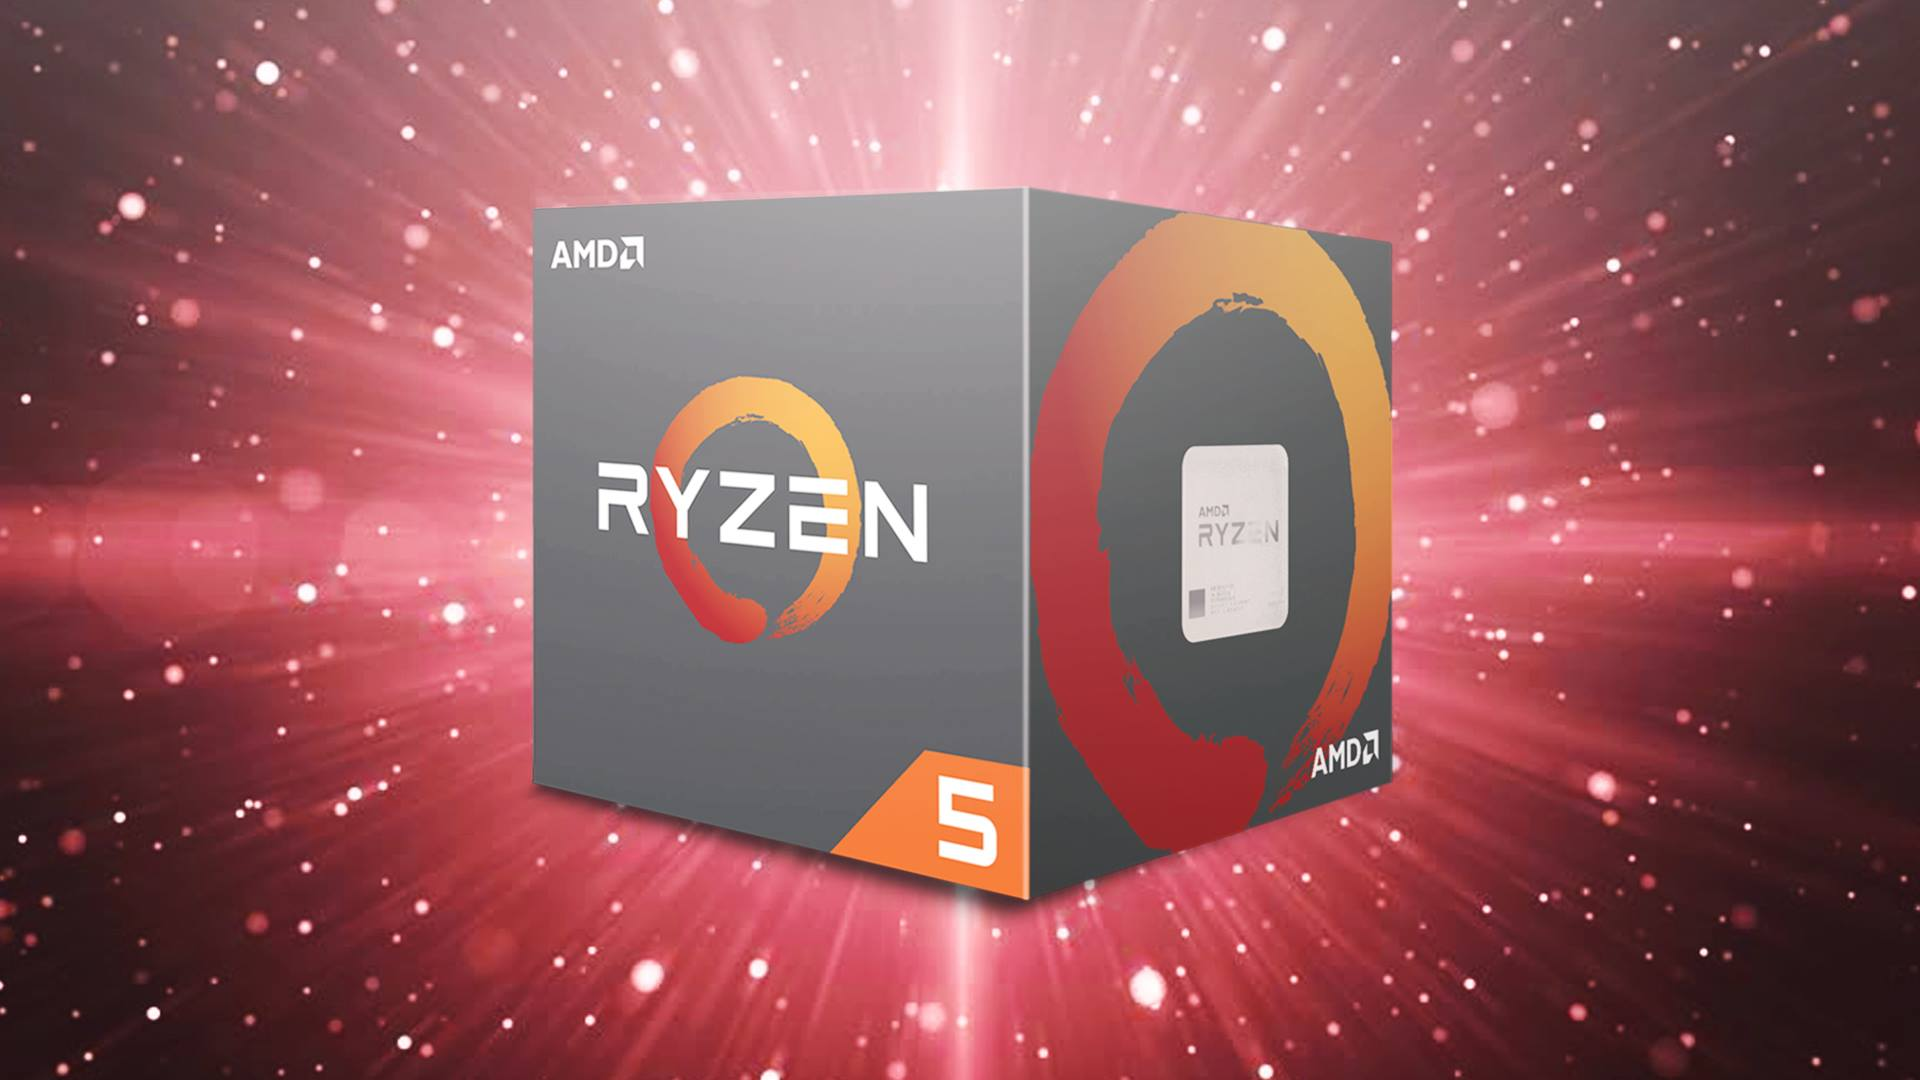 Amd Ryzen 5 Series The Undisputed Kings Of Value